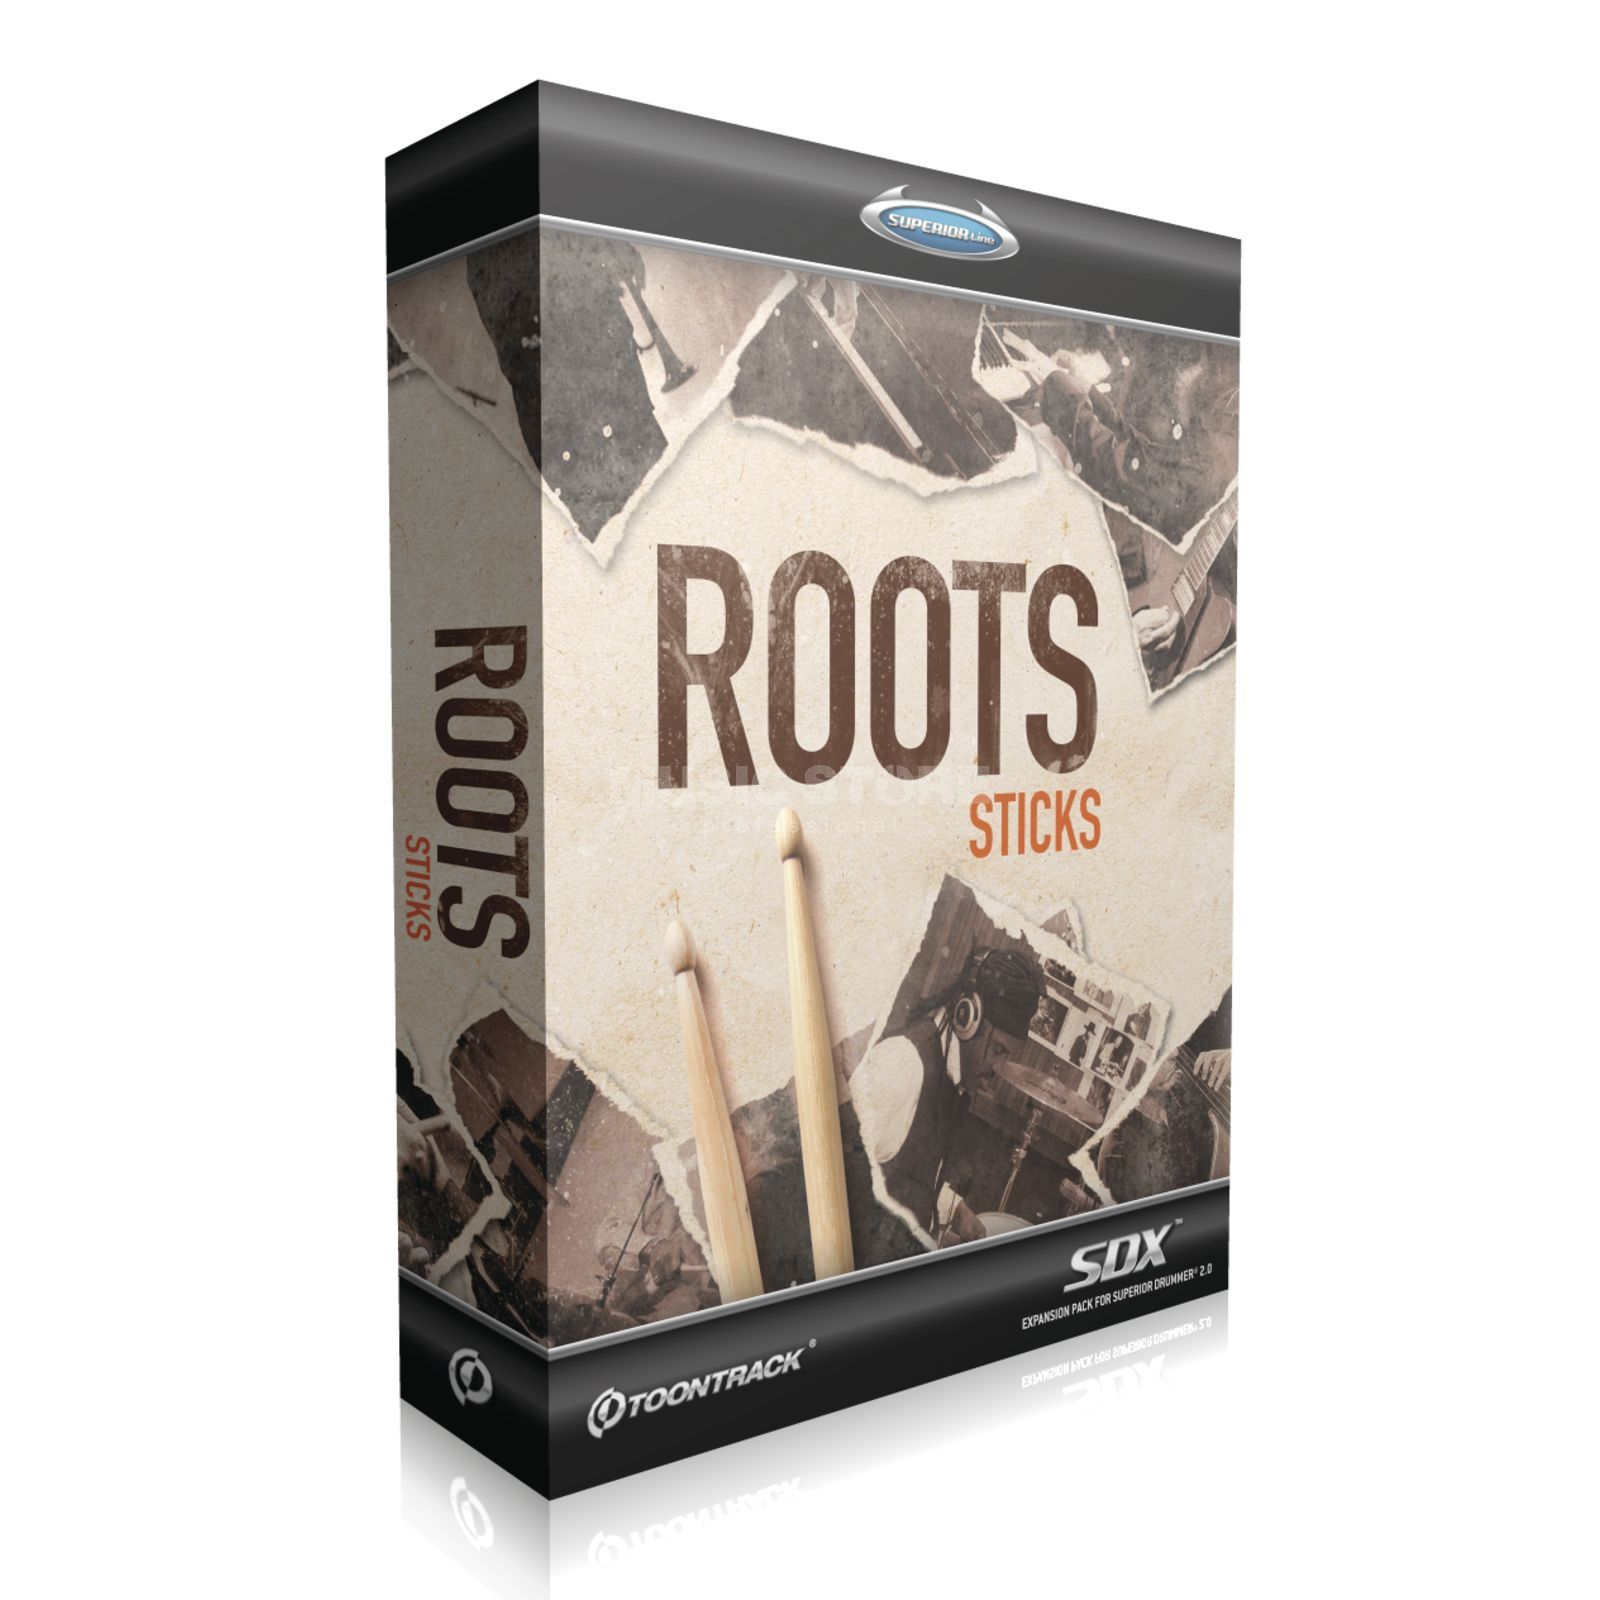 Toontrack SDX Roots: Sticks Superior Drummer 2 Library Produktbild